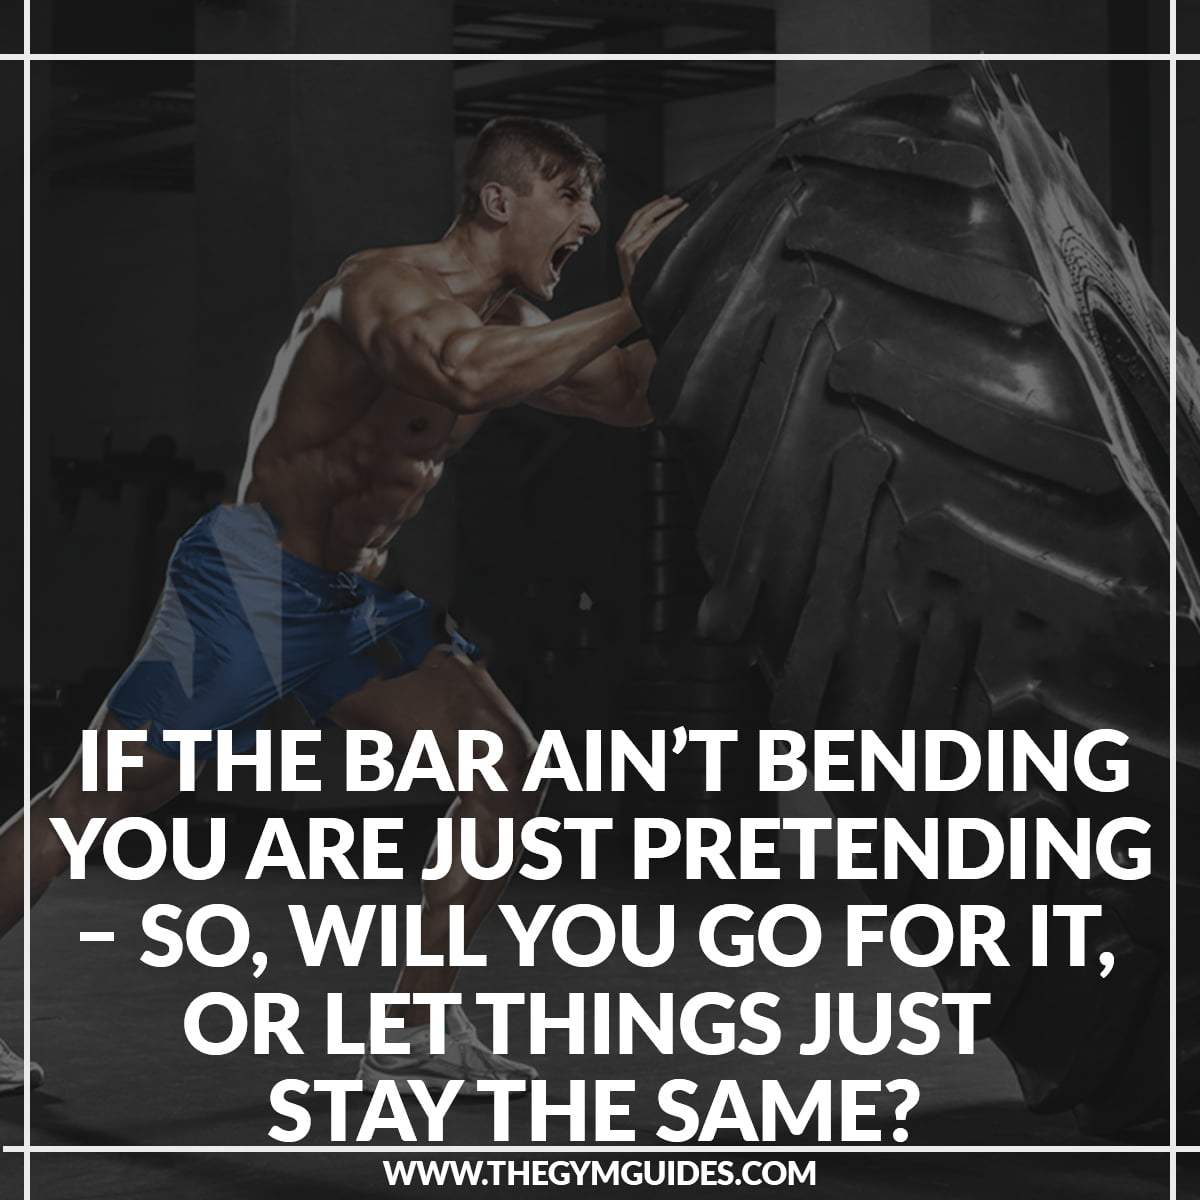 If the Bar ain't Bending you are just Pretending – So, will you go for it, or let things just stay the same